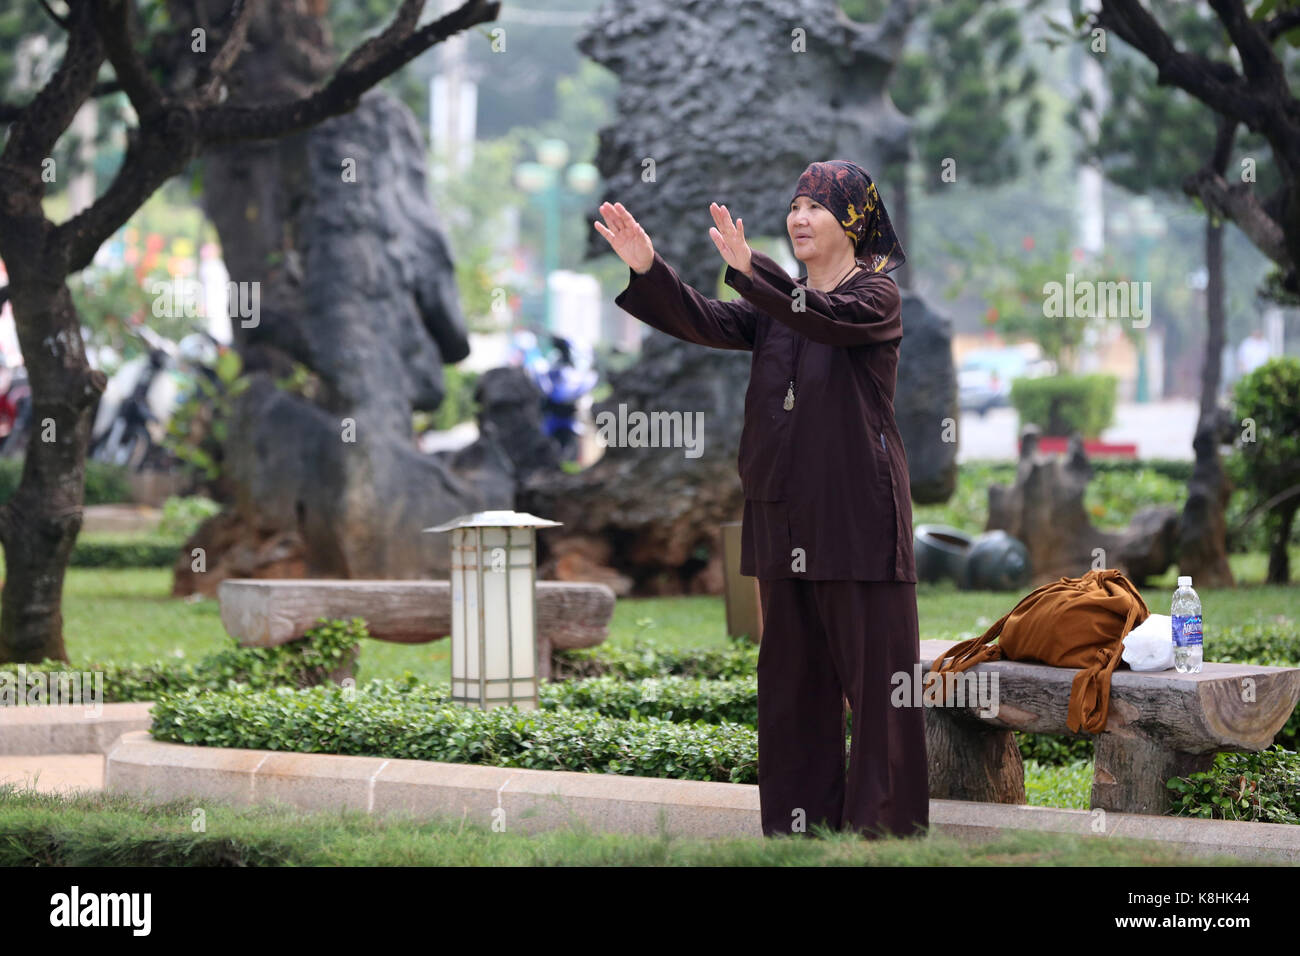 Woman practicing tai chi in a park. vietnam. - Stock Image